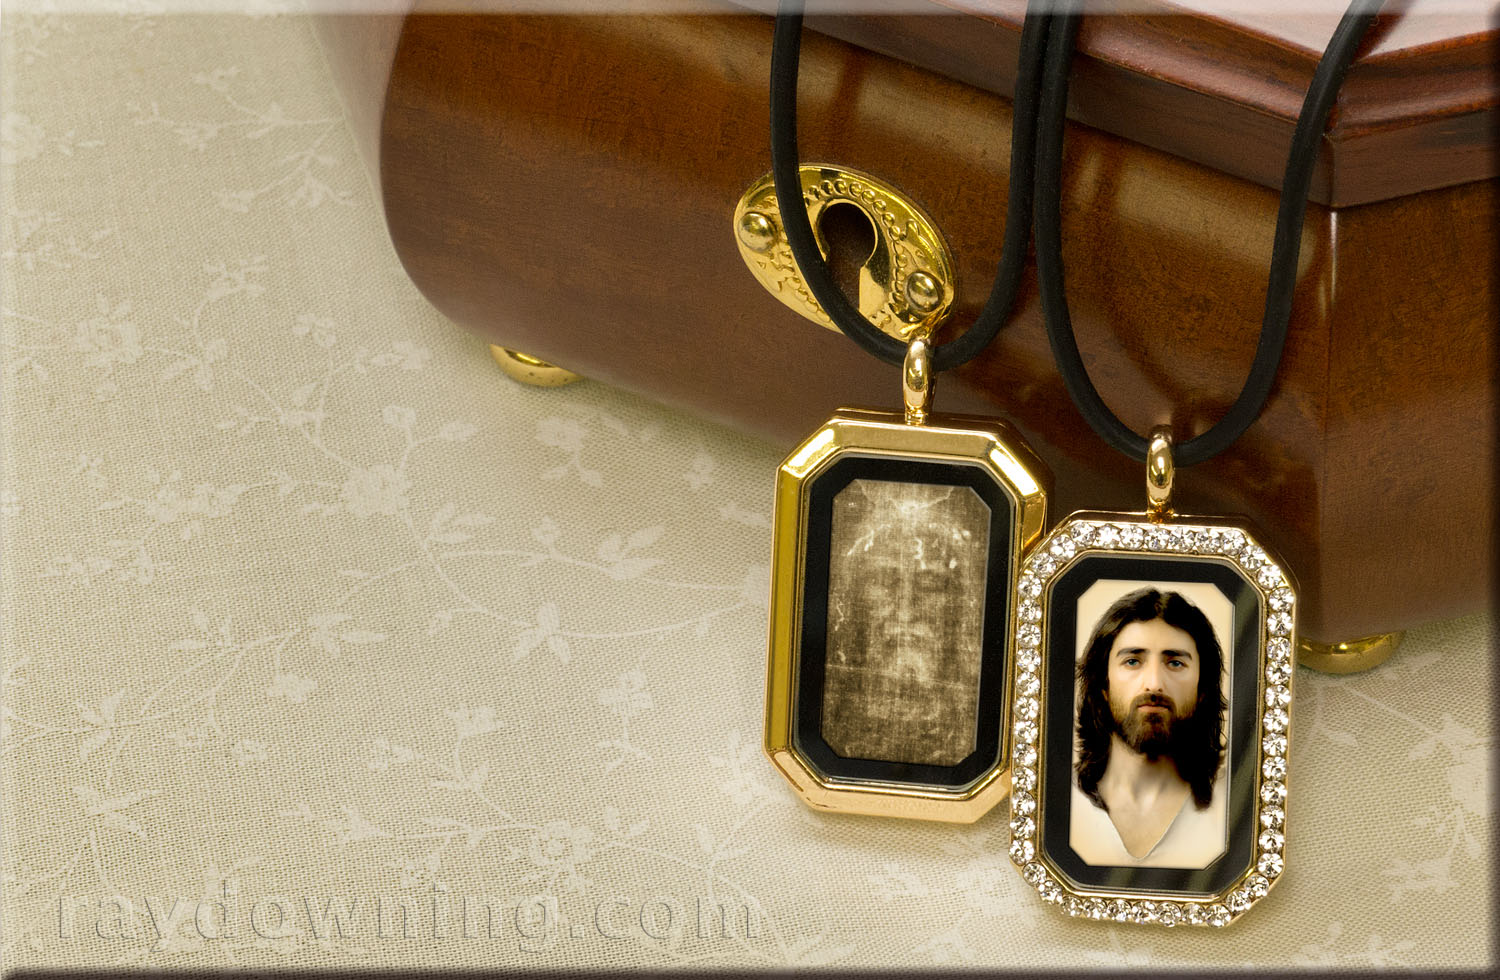 Jesus picture locket rhinestones Shroud of Turin.jpg